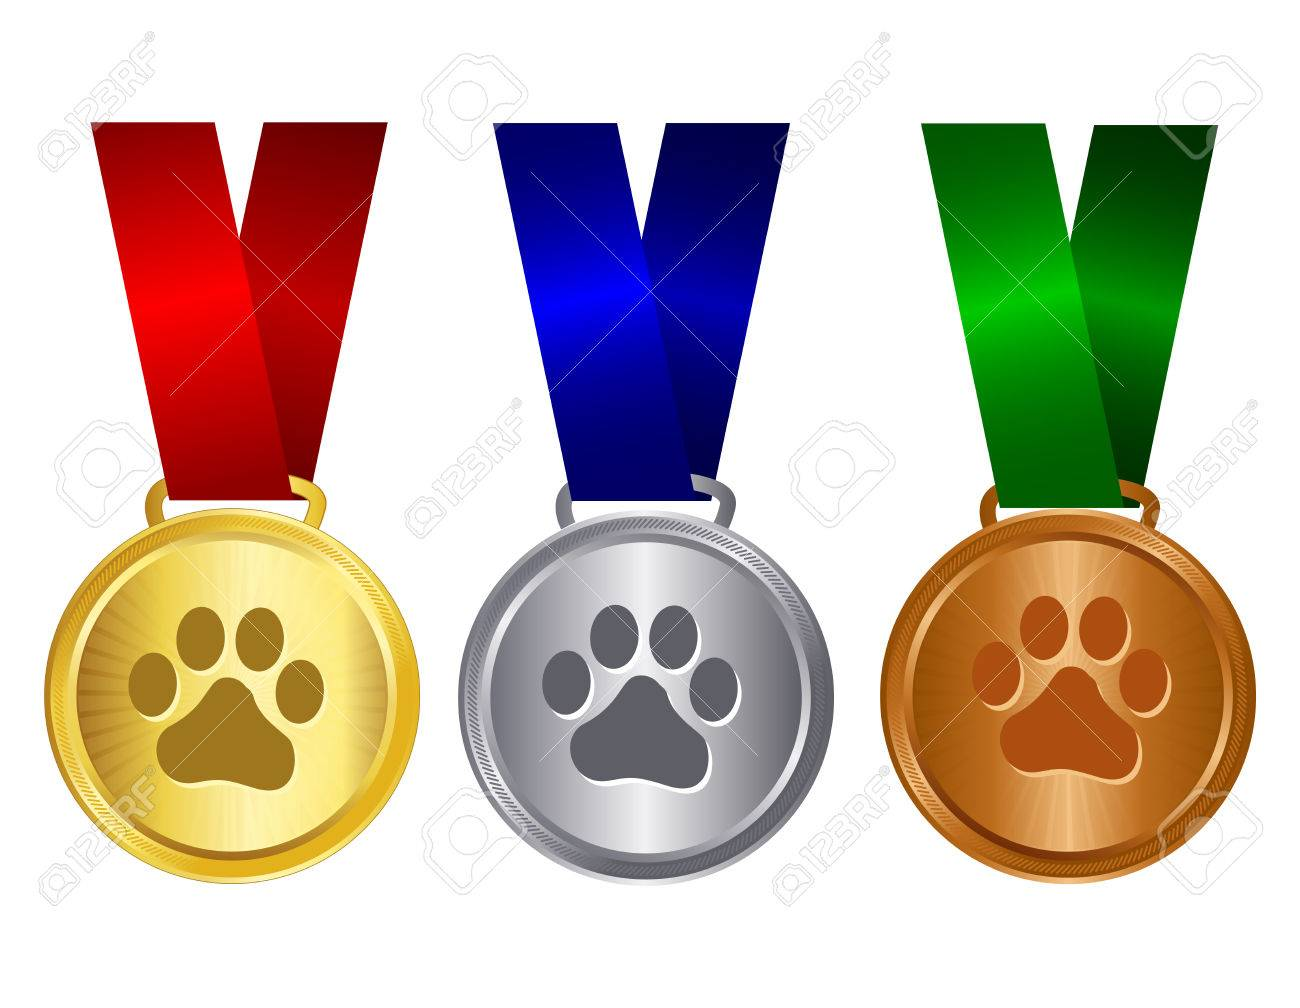 Dog show winners award medal gold , silver and bronze with red